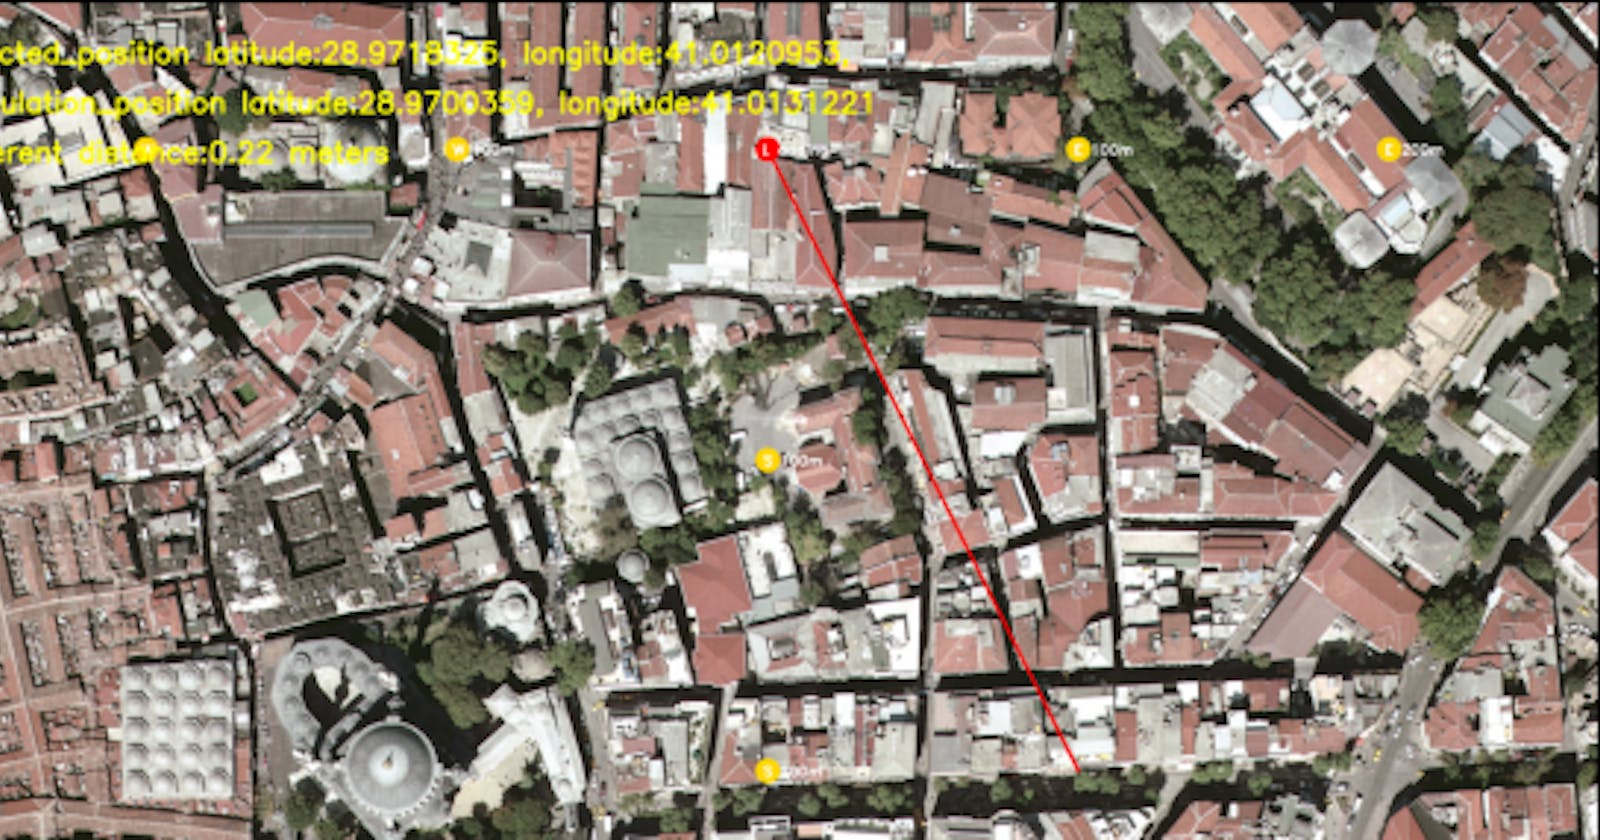 Coordinate Calculation from Aerial Images